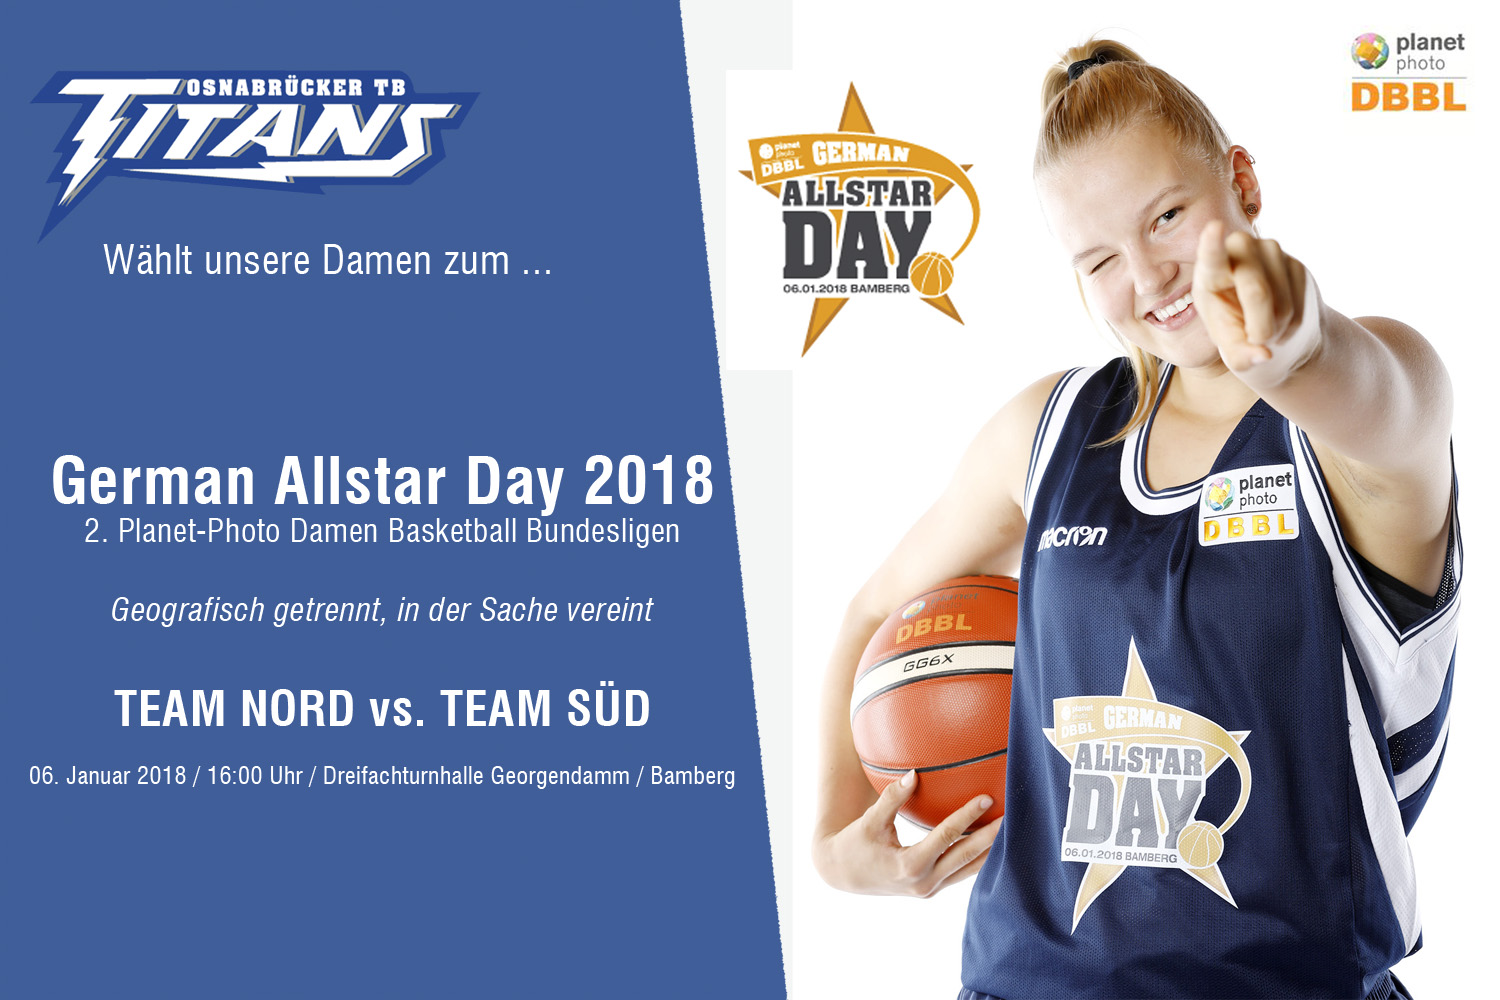 Voting zum German Allstar Day 2018 der 2. Planet-Photo DBBL ist gestartet